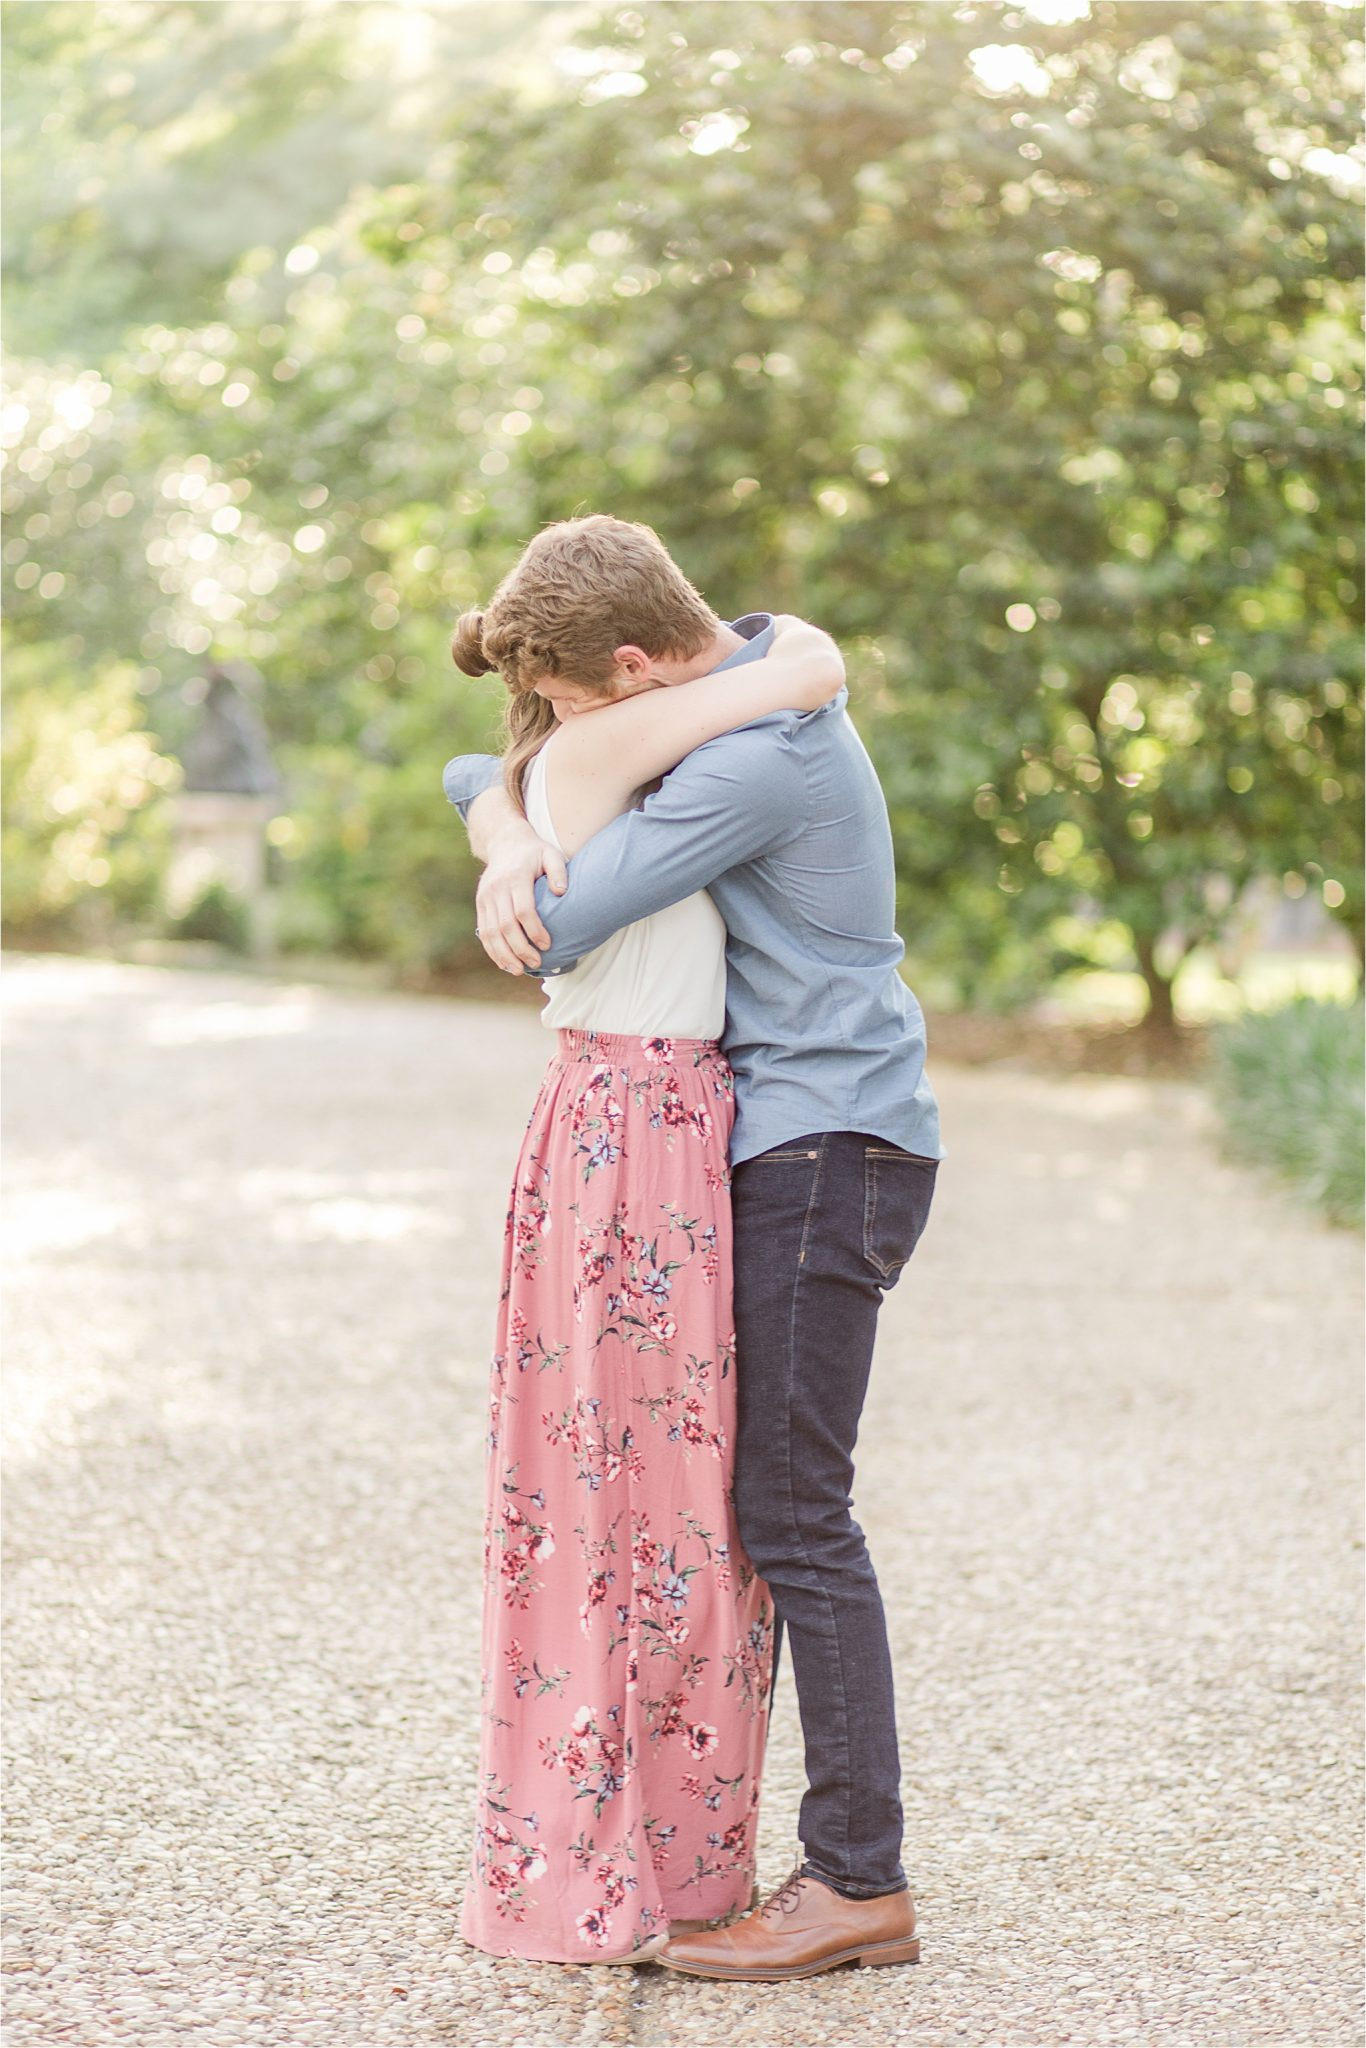 family photography-couple photography-couples hugging portraits-mom and dad